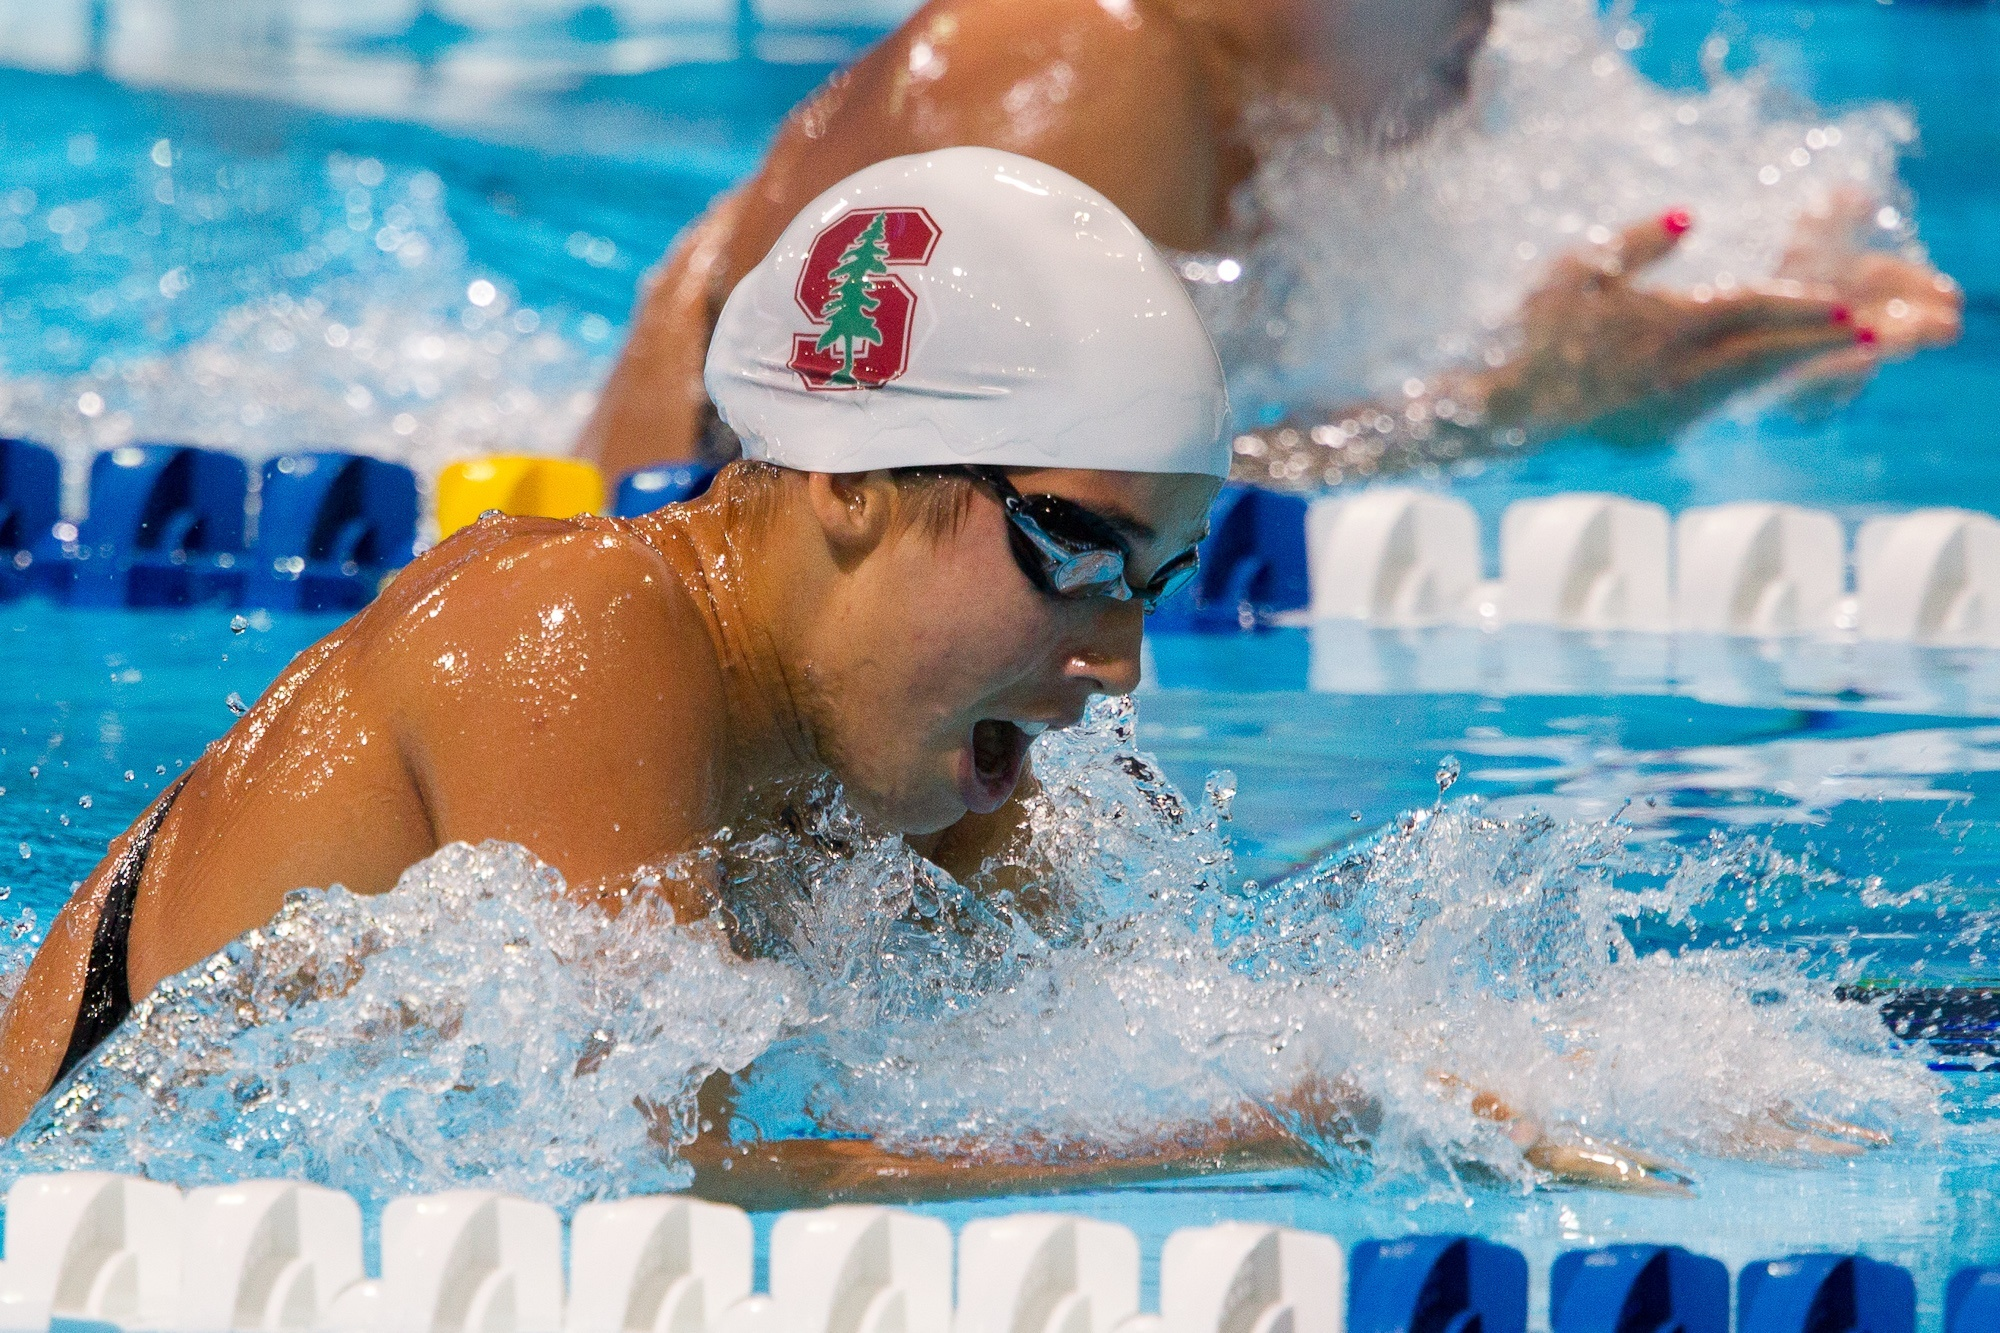 Stanford Holds 8 Point Lead Over Usc With One Day To Go At 2013 Women 39 S Pac 12 Championship